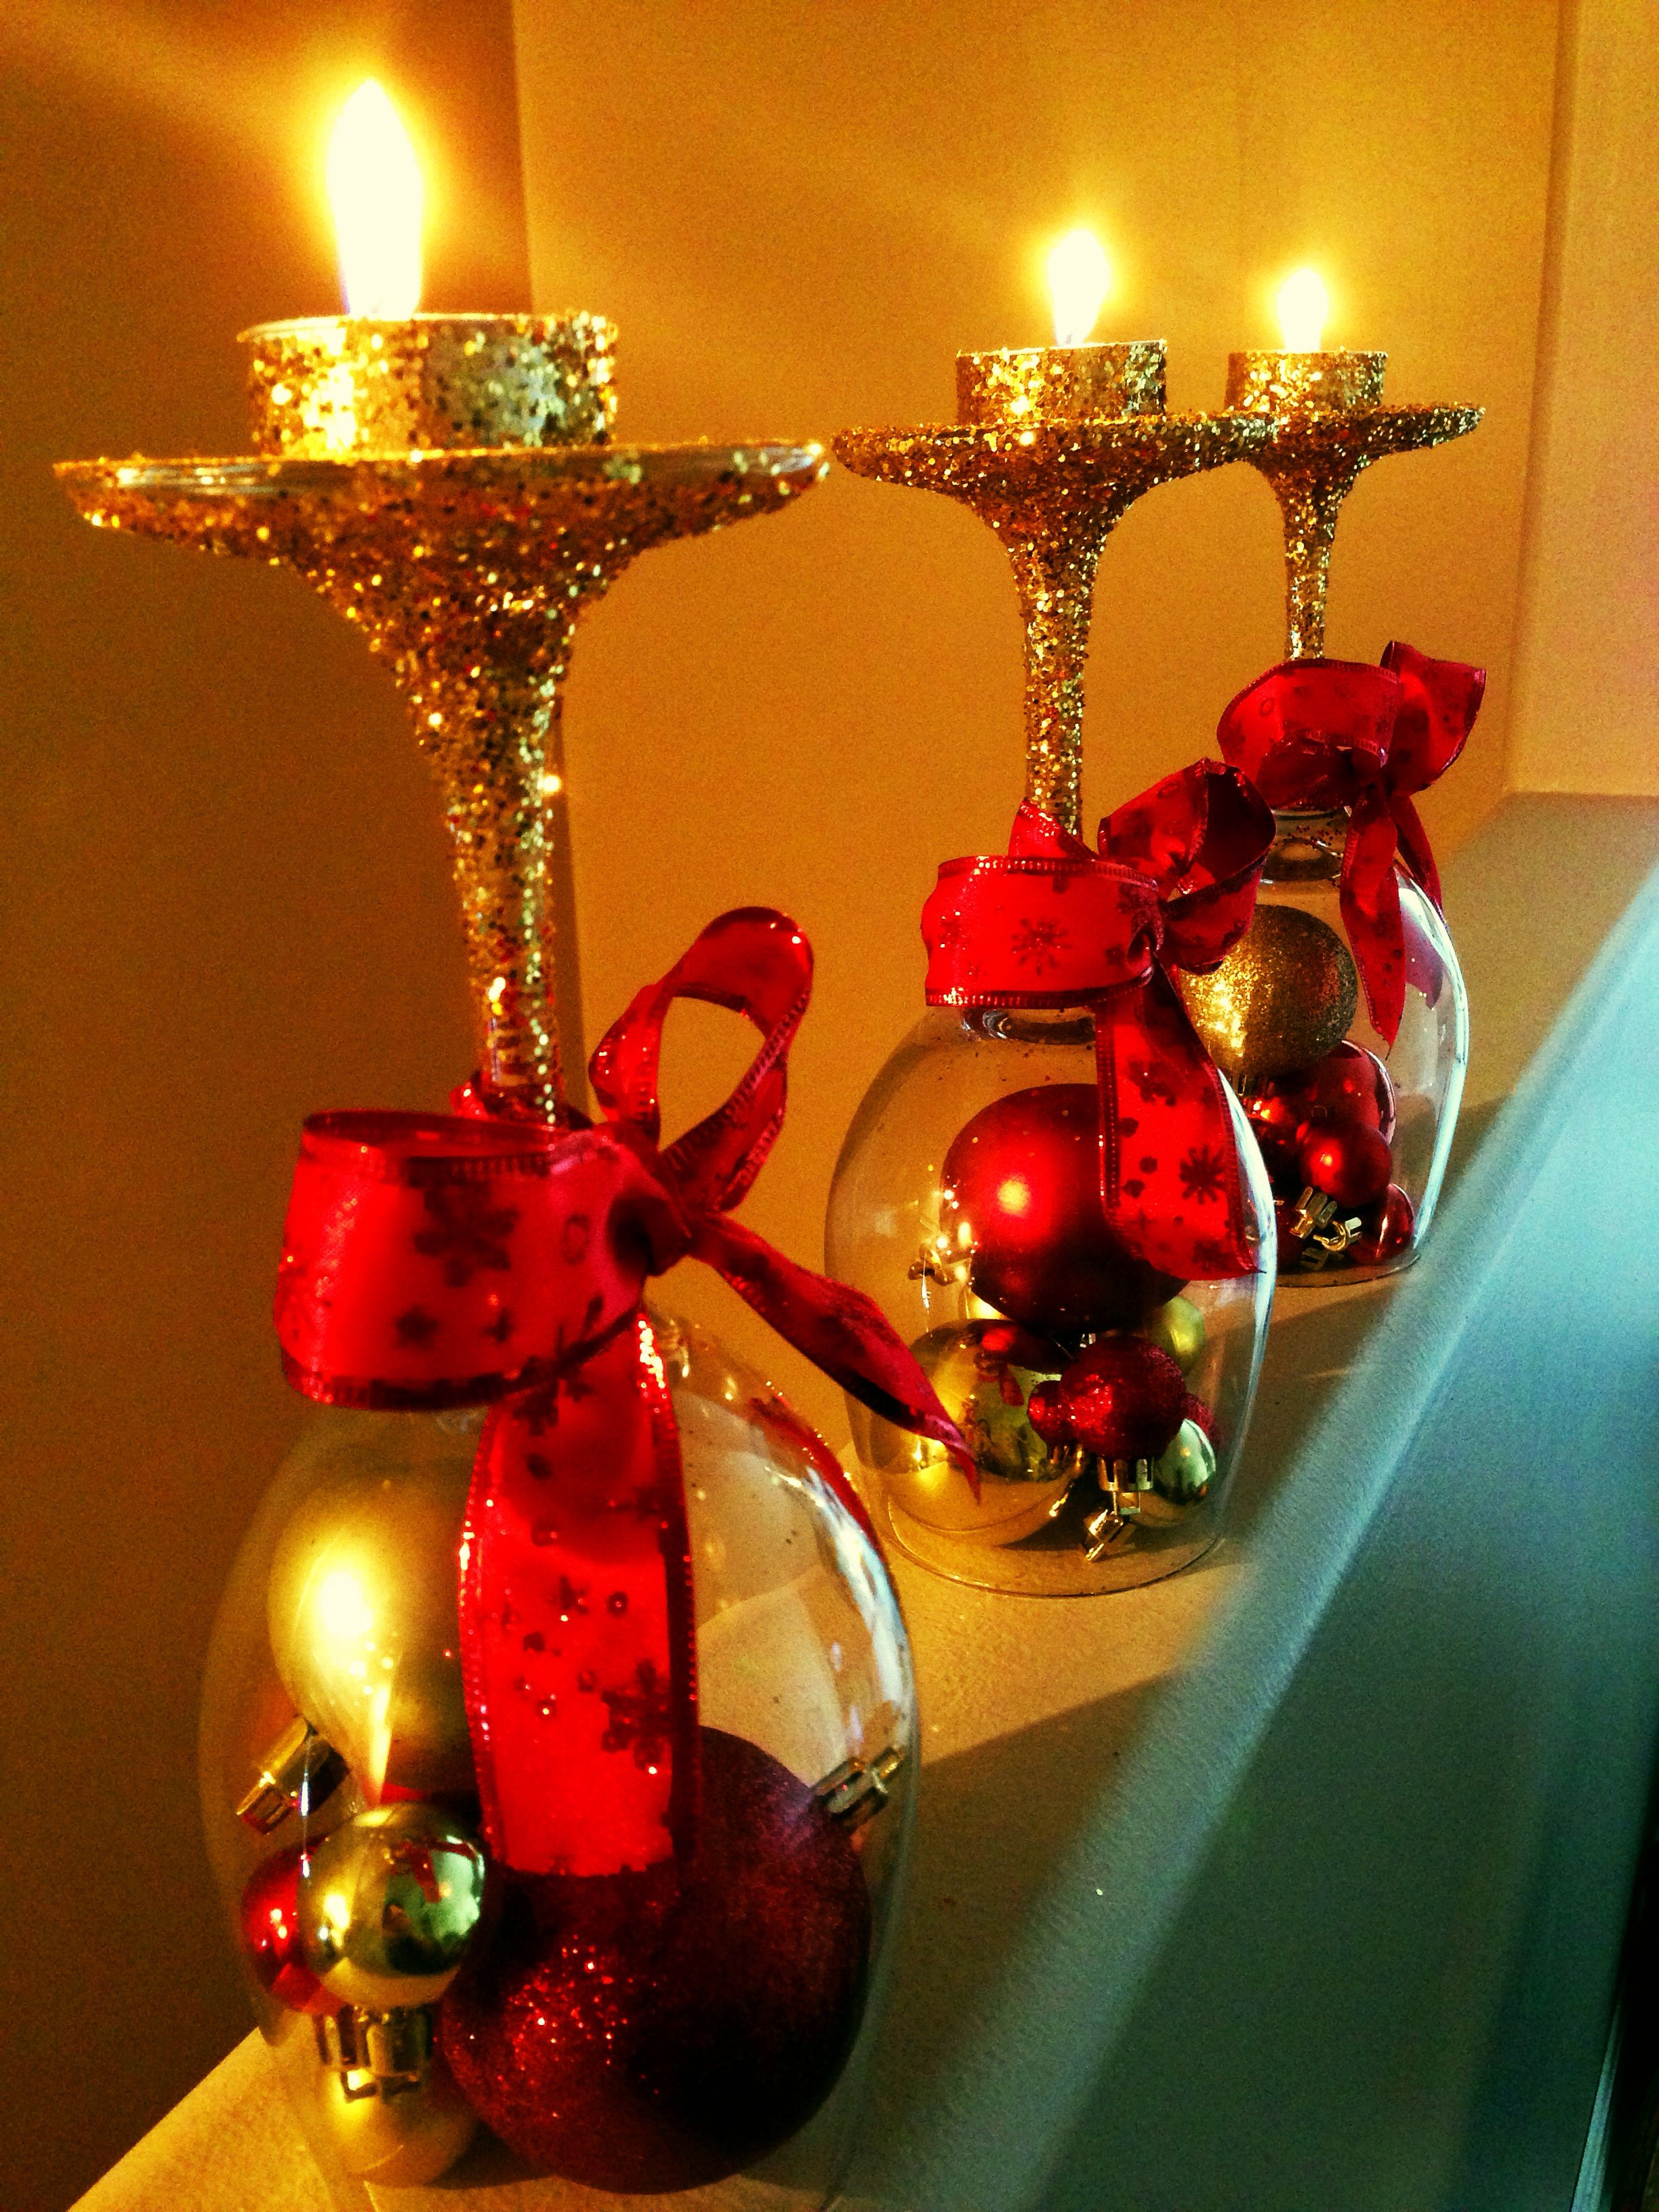 Pin By Ela On Wine Glasses Christmas Candle Decorations Diy Christmas Decorations Easy Christmas Candle Holders Diy